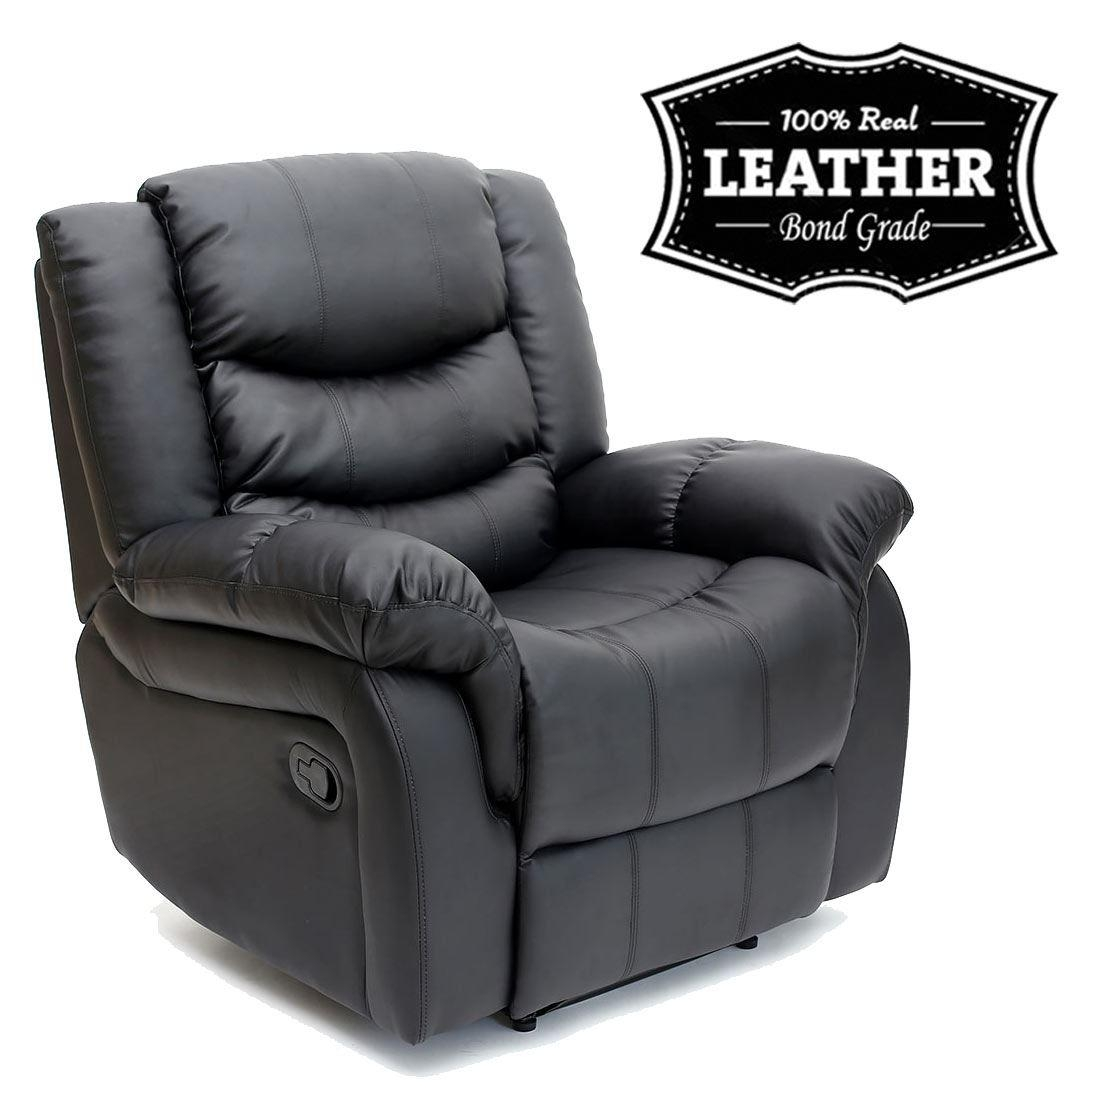 Seattle Leather Recliner Armchair Sofa Home Lounge Chair Reclining Intended For Gaming Sofa Chairs (Image 20 of 20)